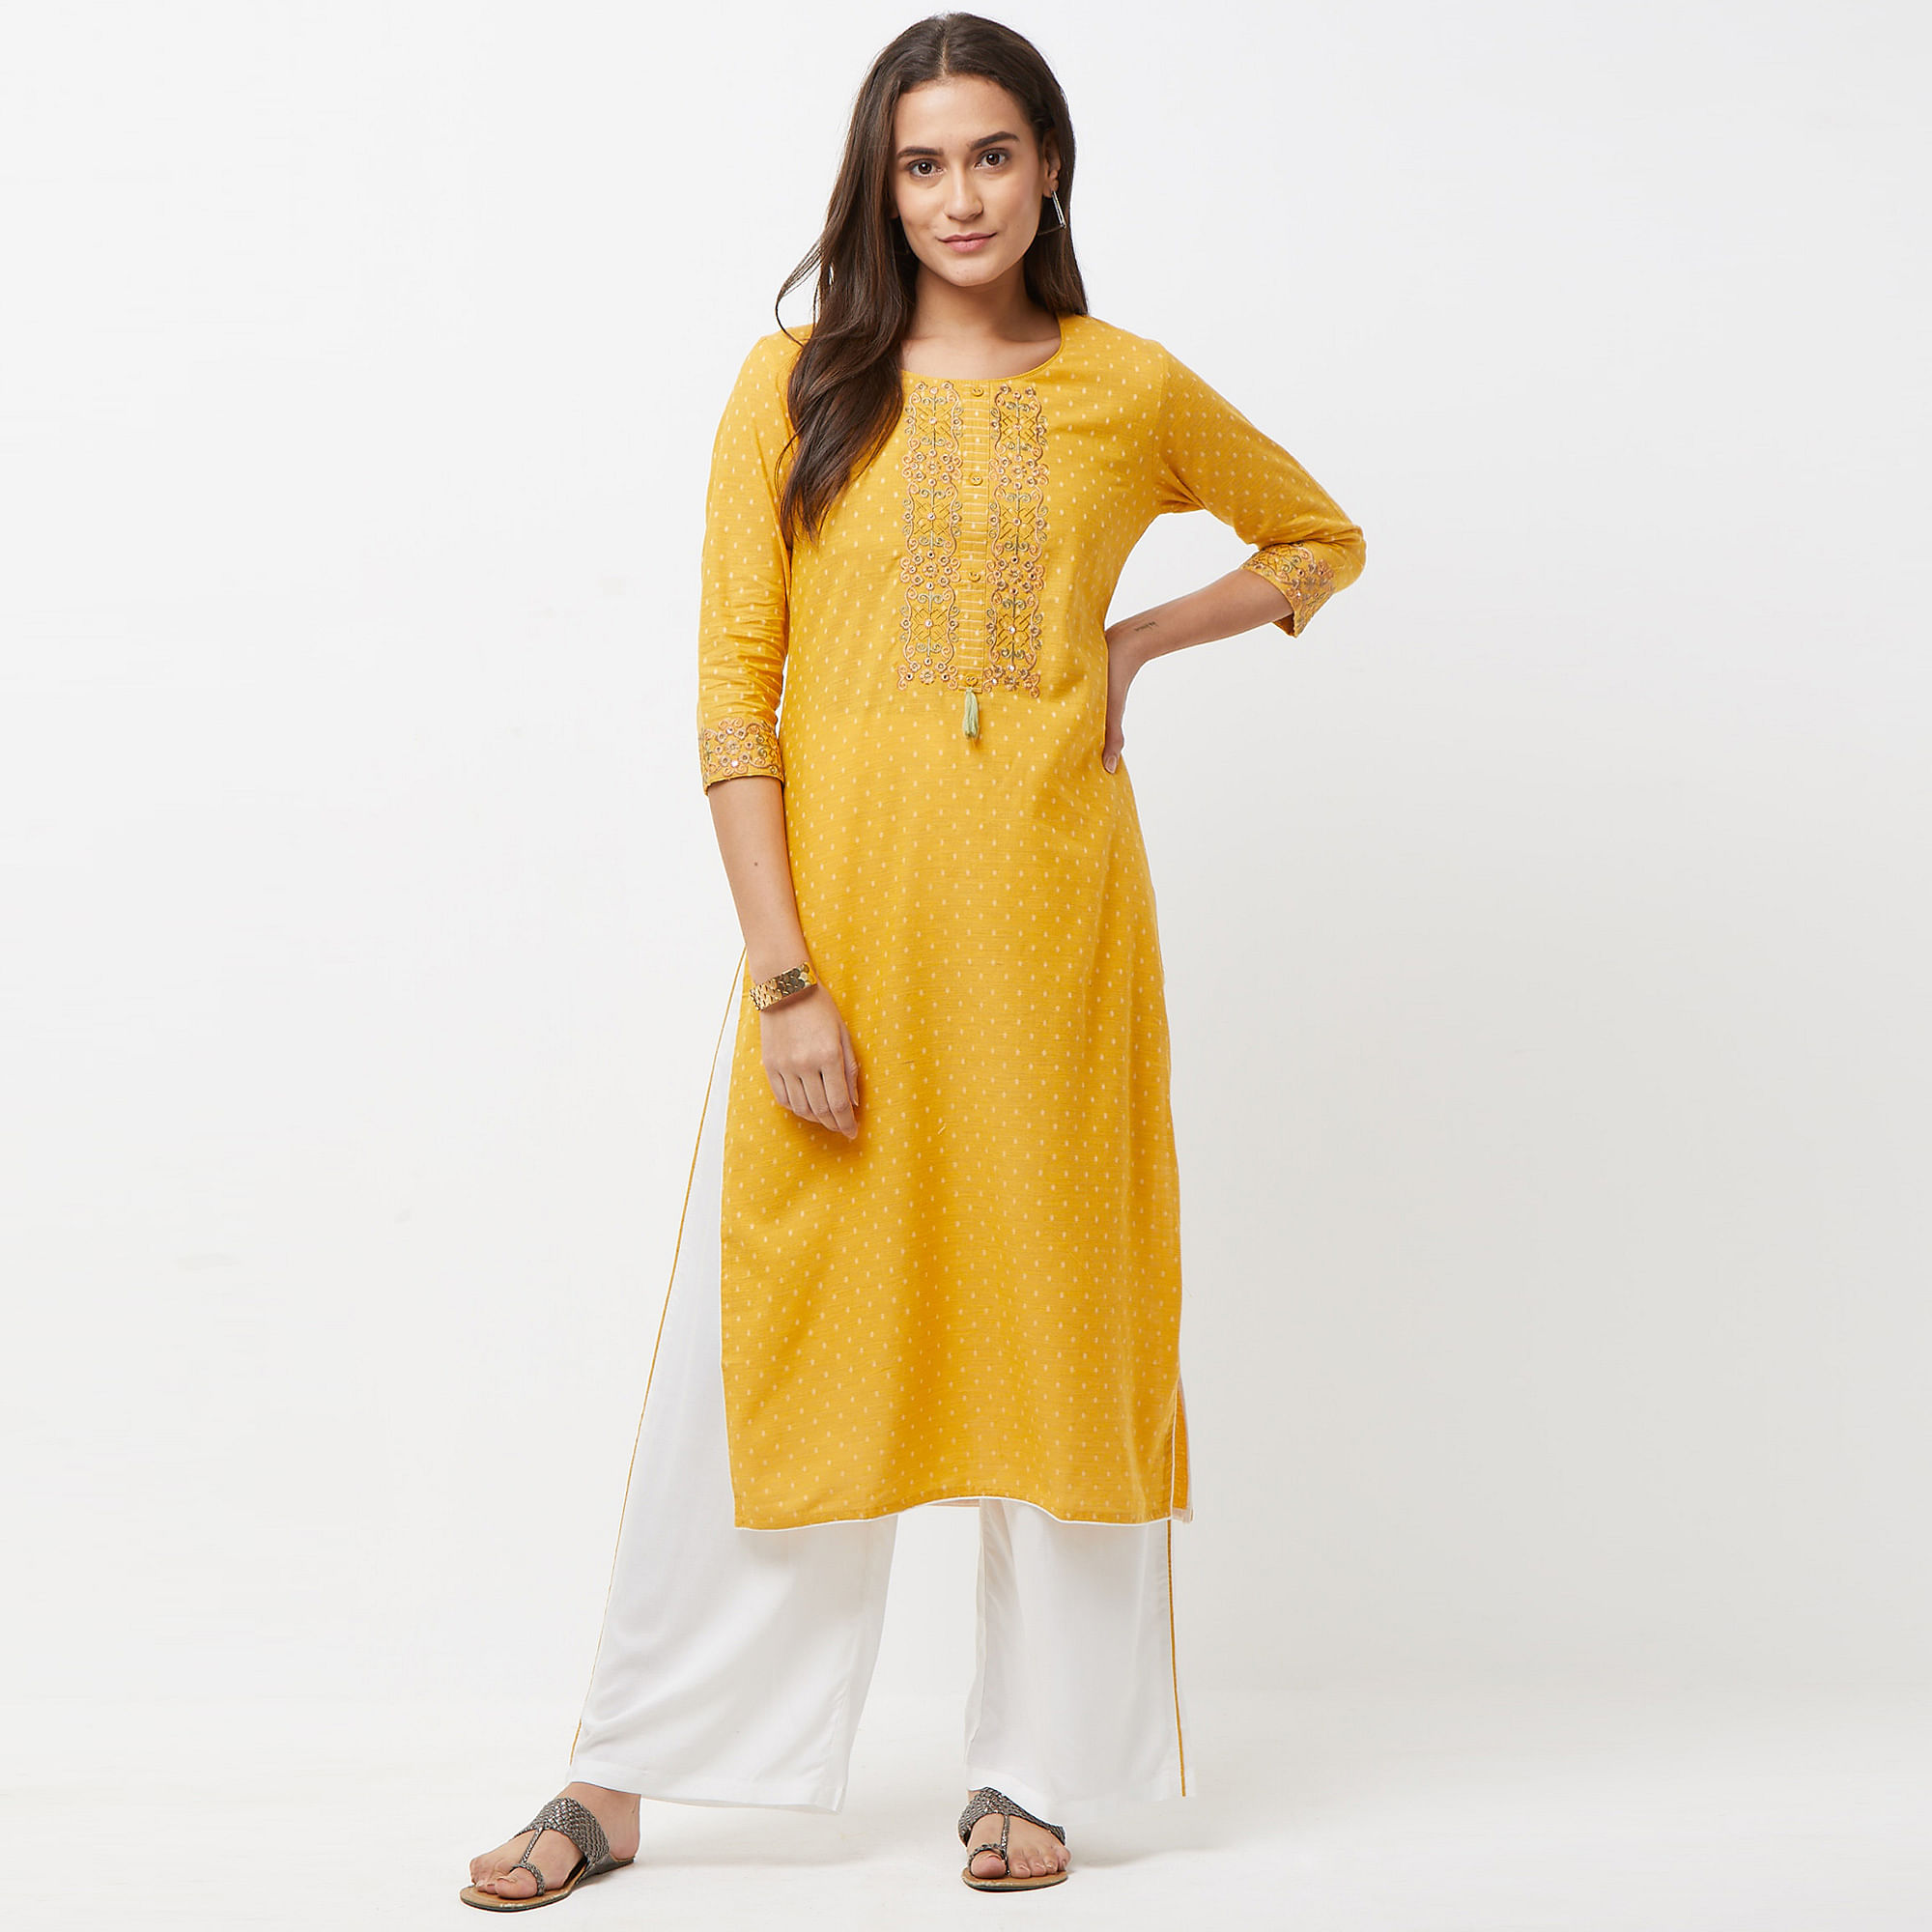 Mesmerising Mustard Yellow Colored Partywear Printed Cotton Kurti-Bottom Set